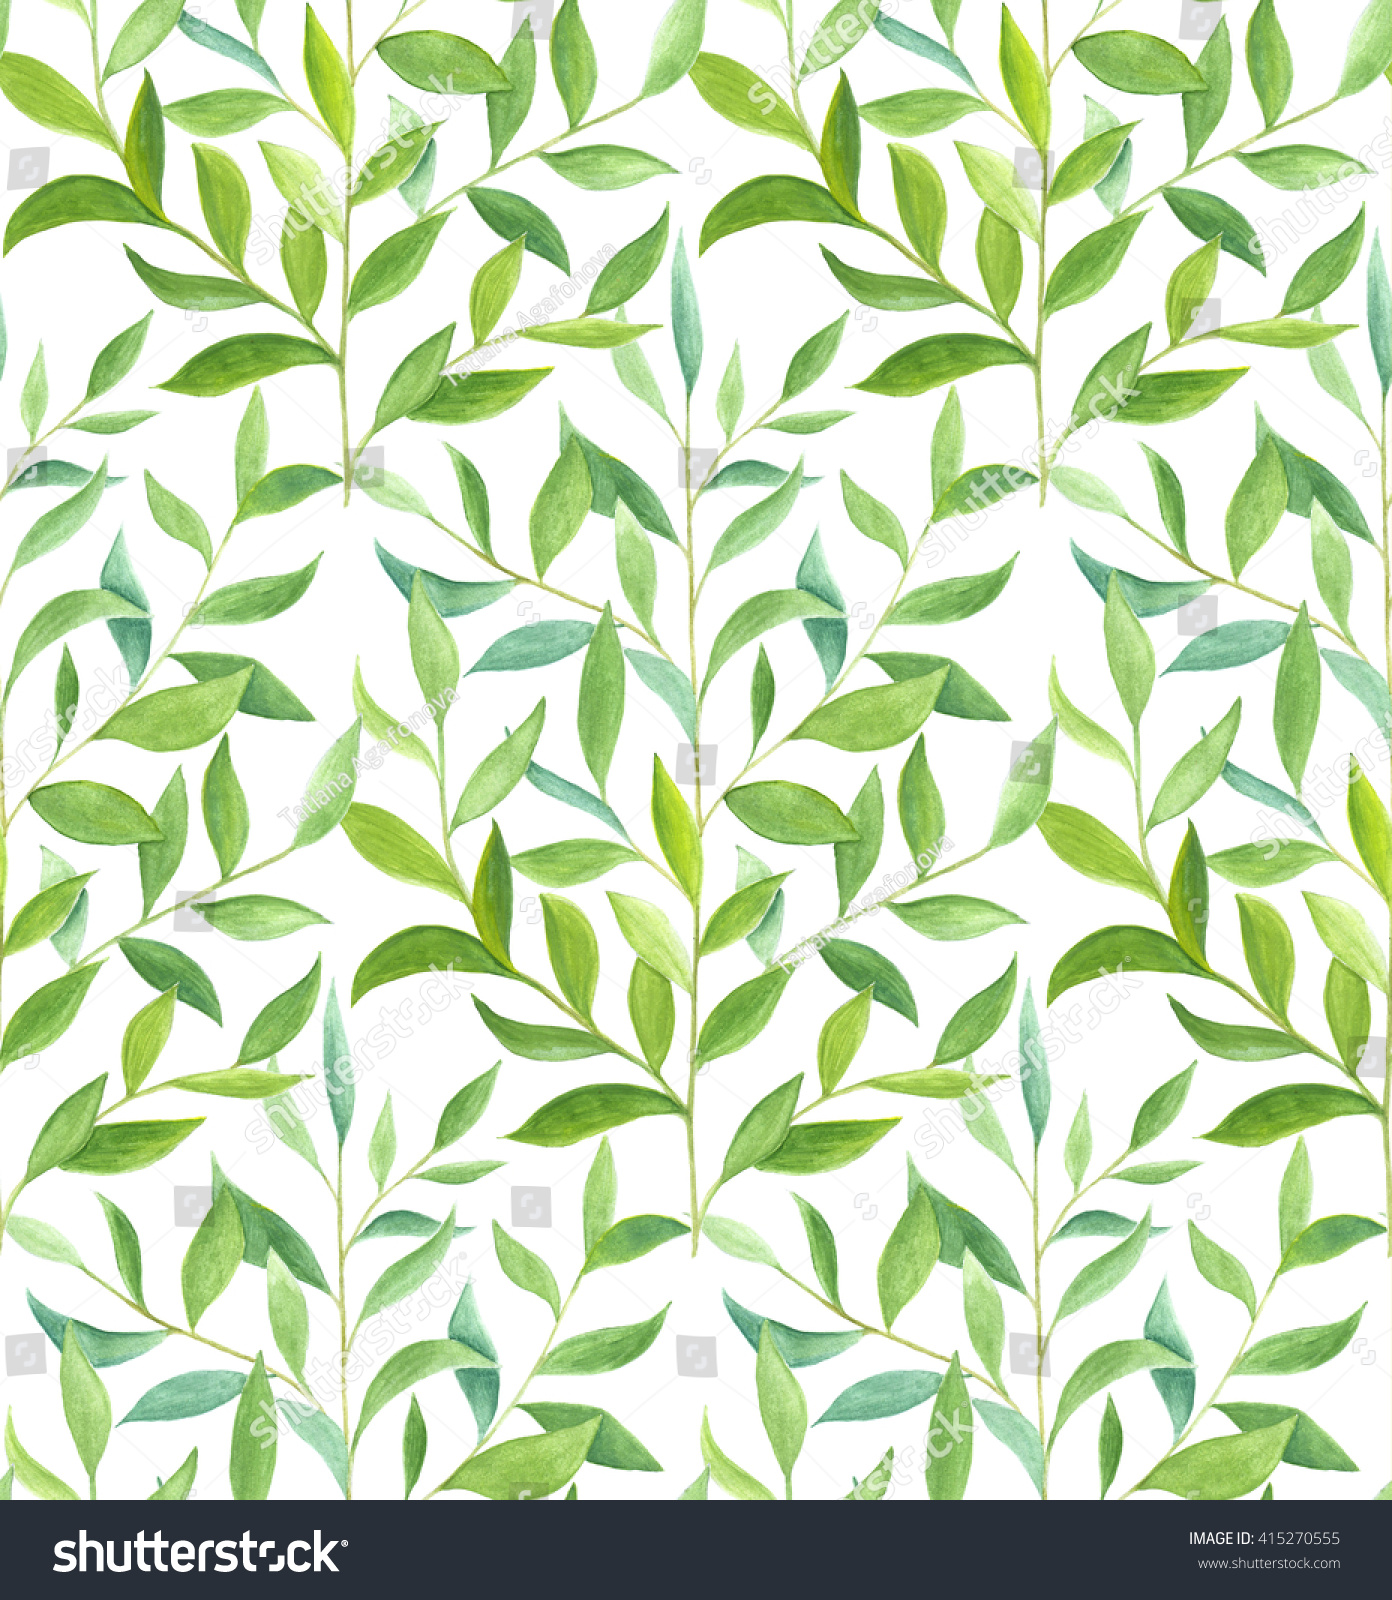 Herbal Wallpaper Watercolor Green Plant Herbal Seamless Pattern Stock Illustration